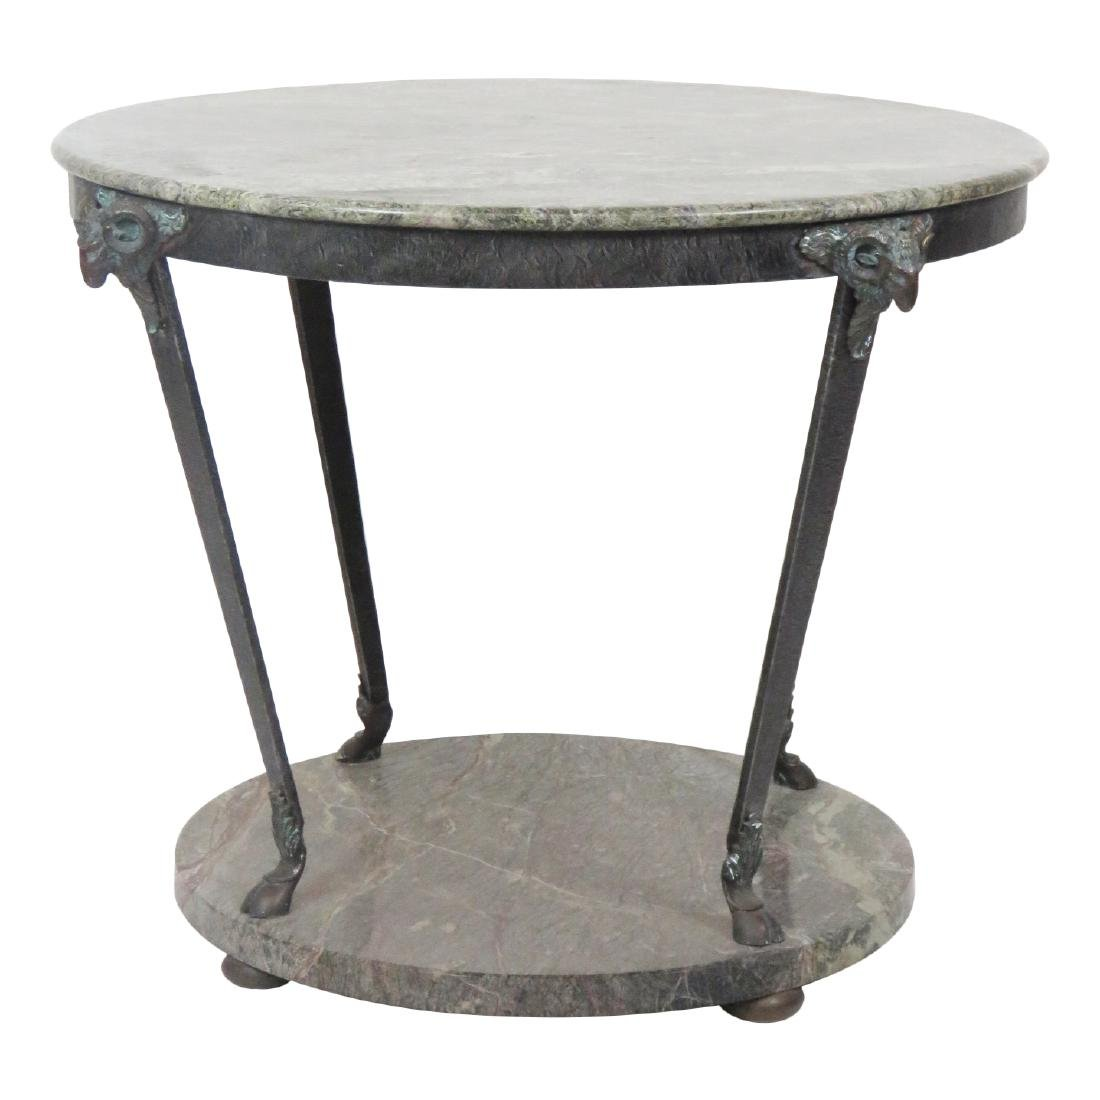 GIACOMETTI STYLE MARBLETOP CENTER TABLE